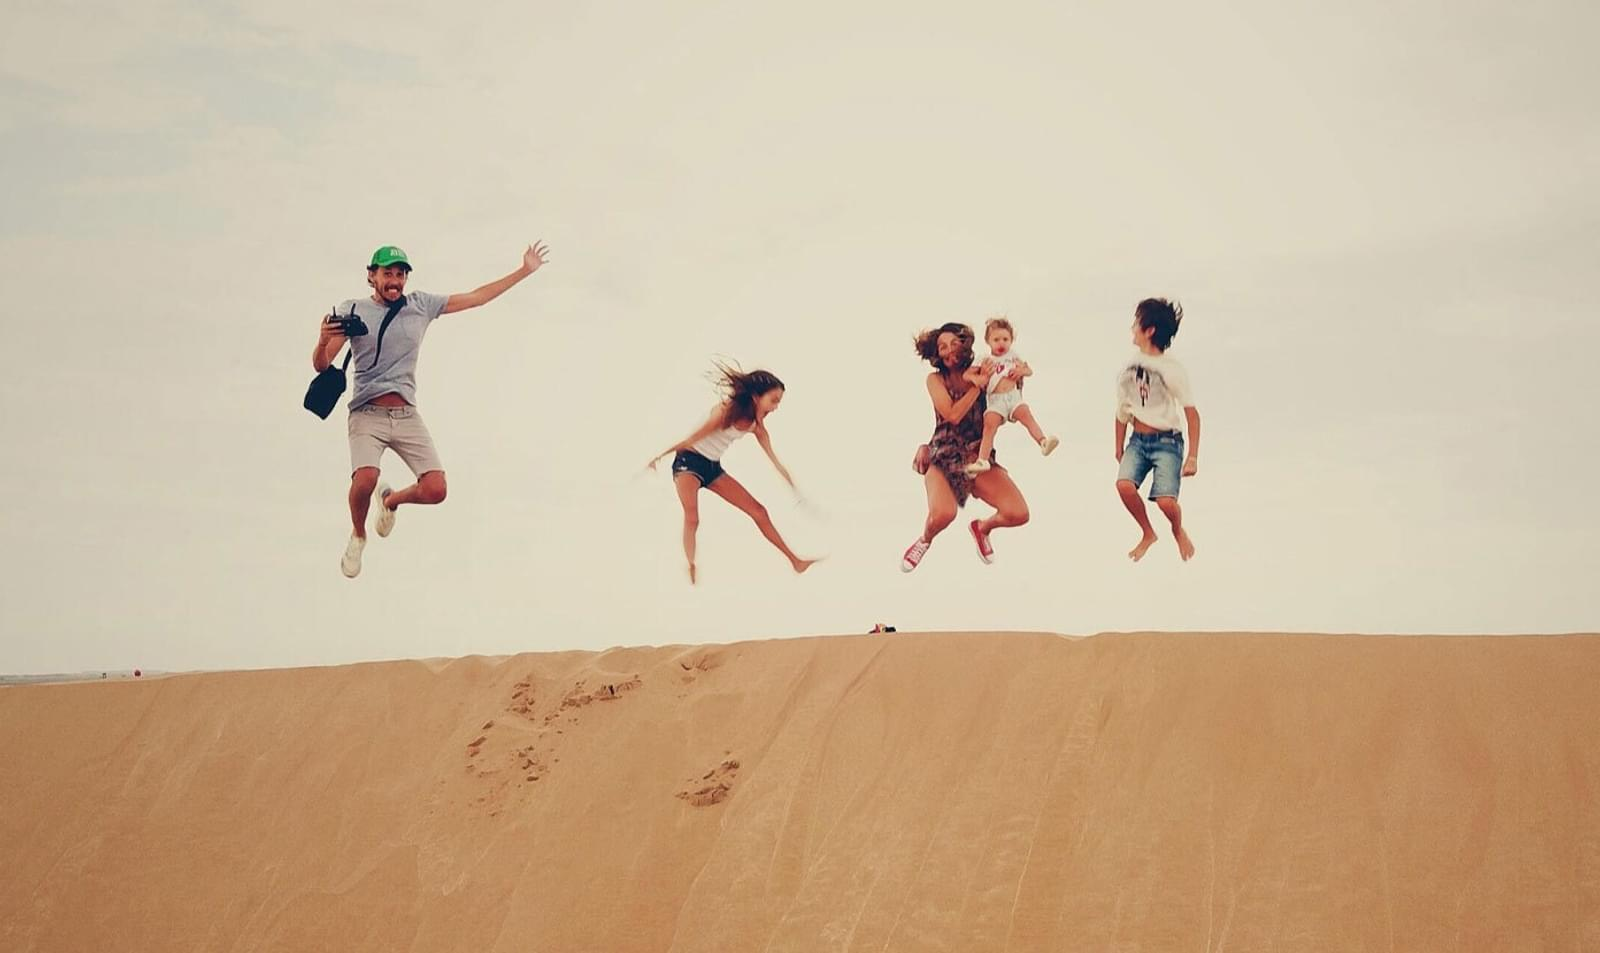 family jump with jumps in the sand dune